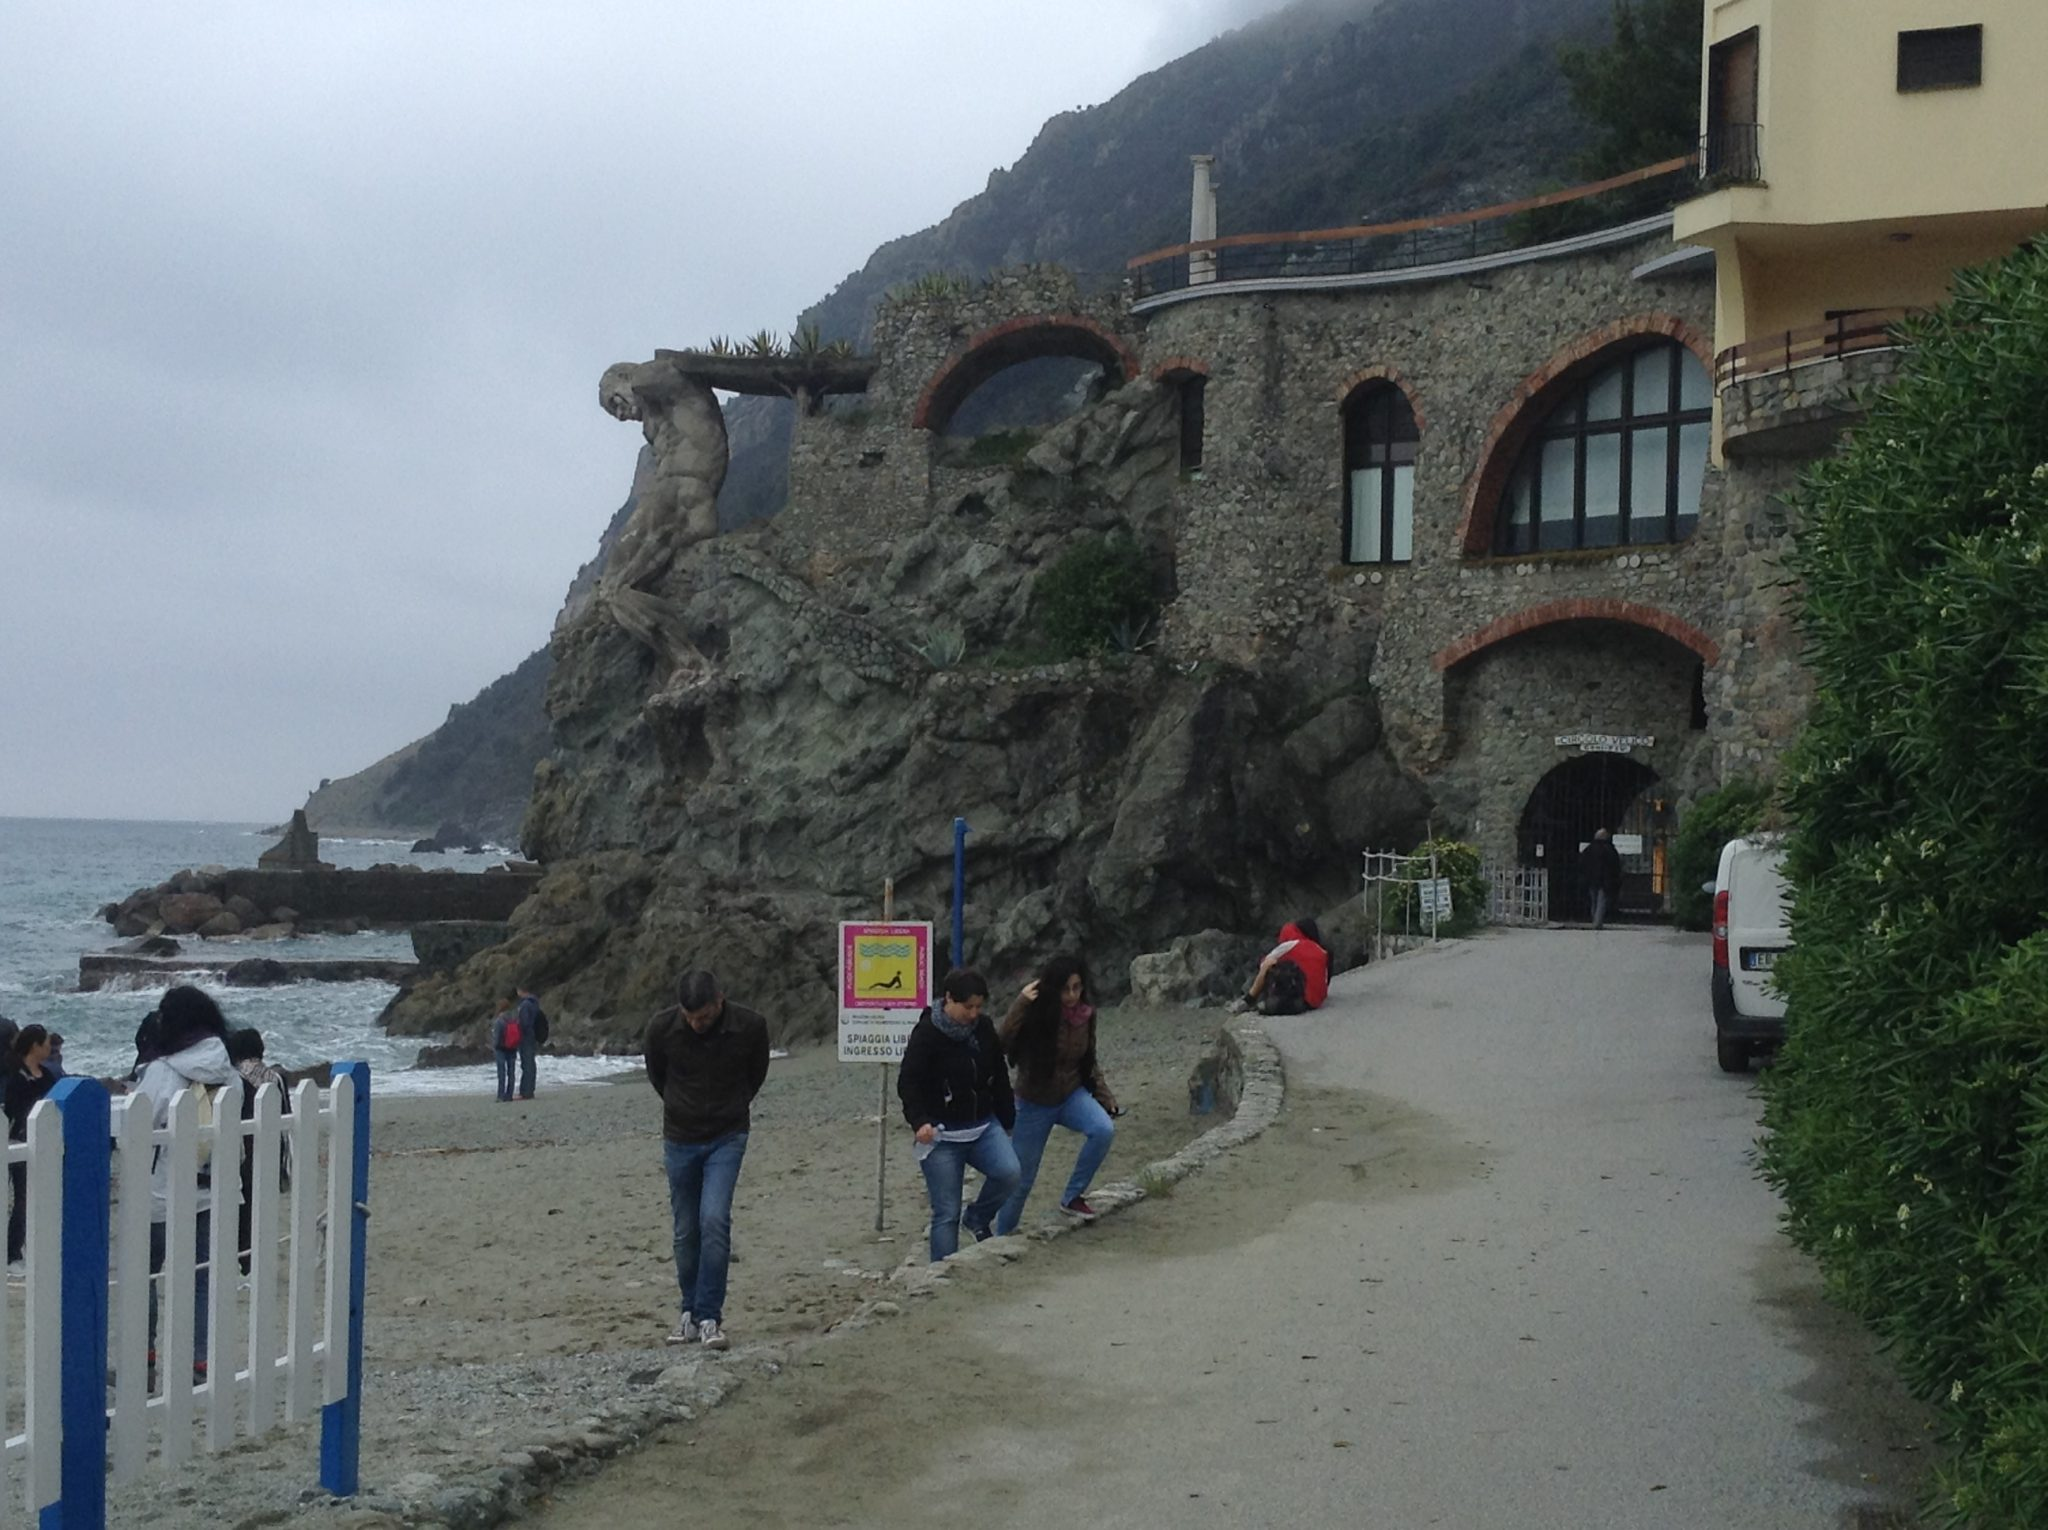 Giant statue of Neptune at Monterosso, Cinque Terre